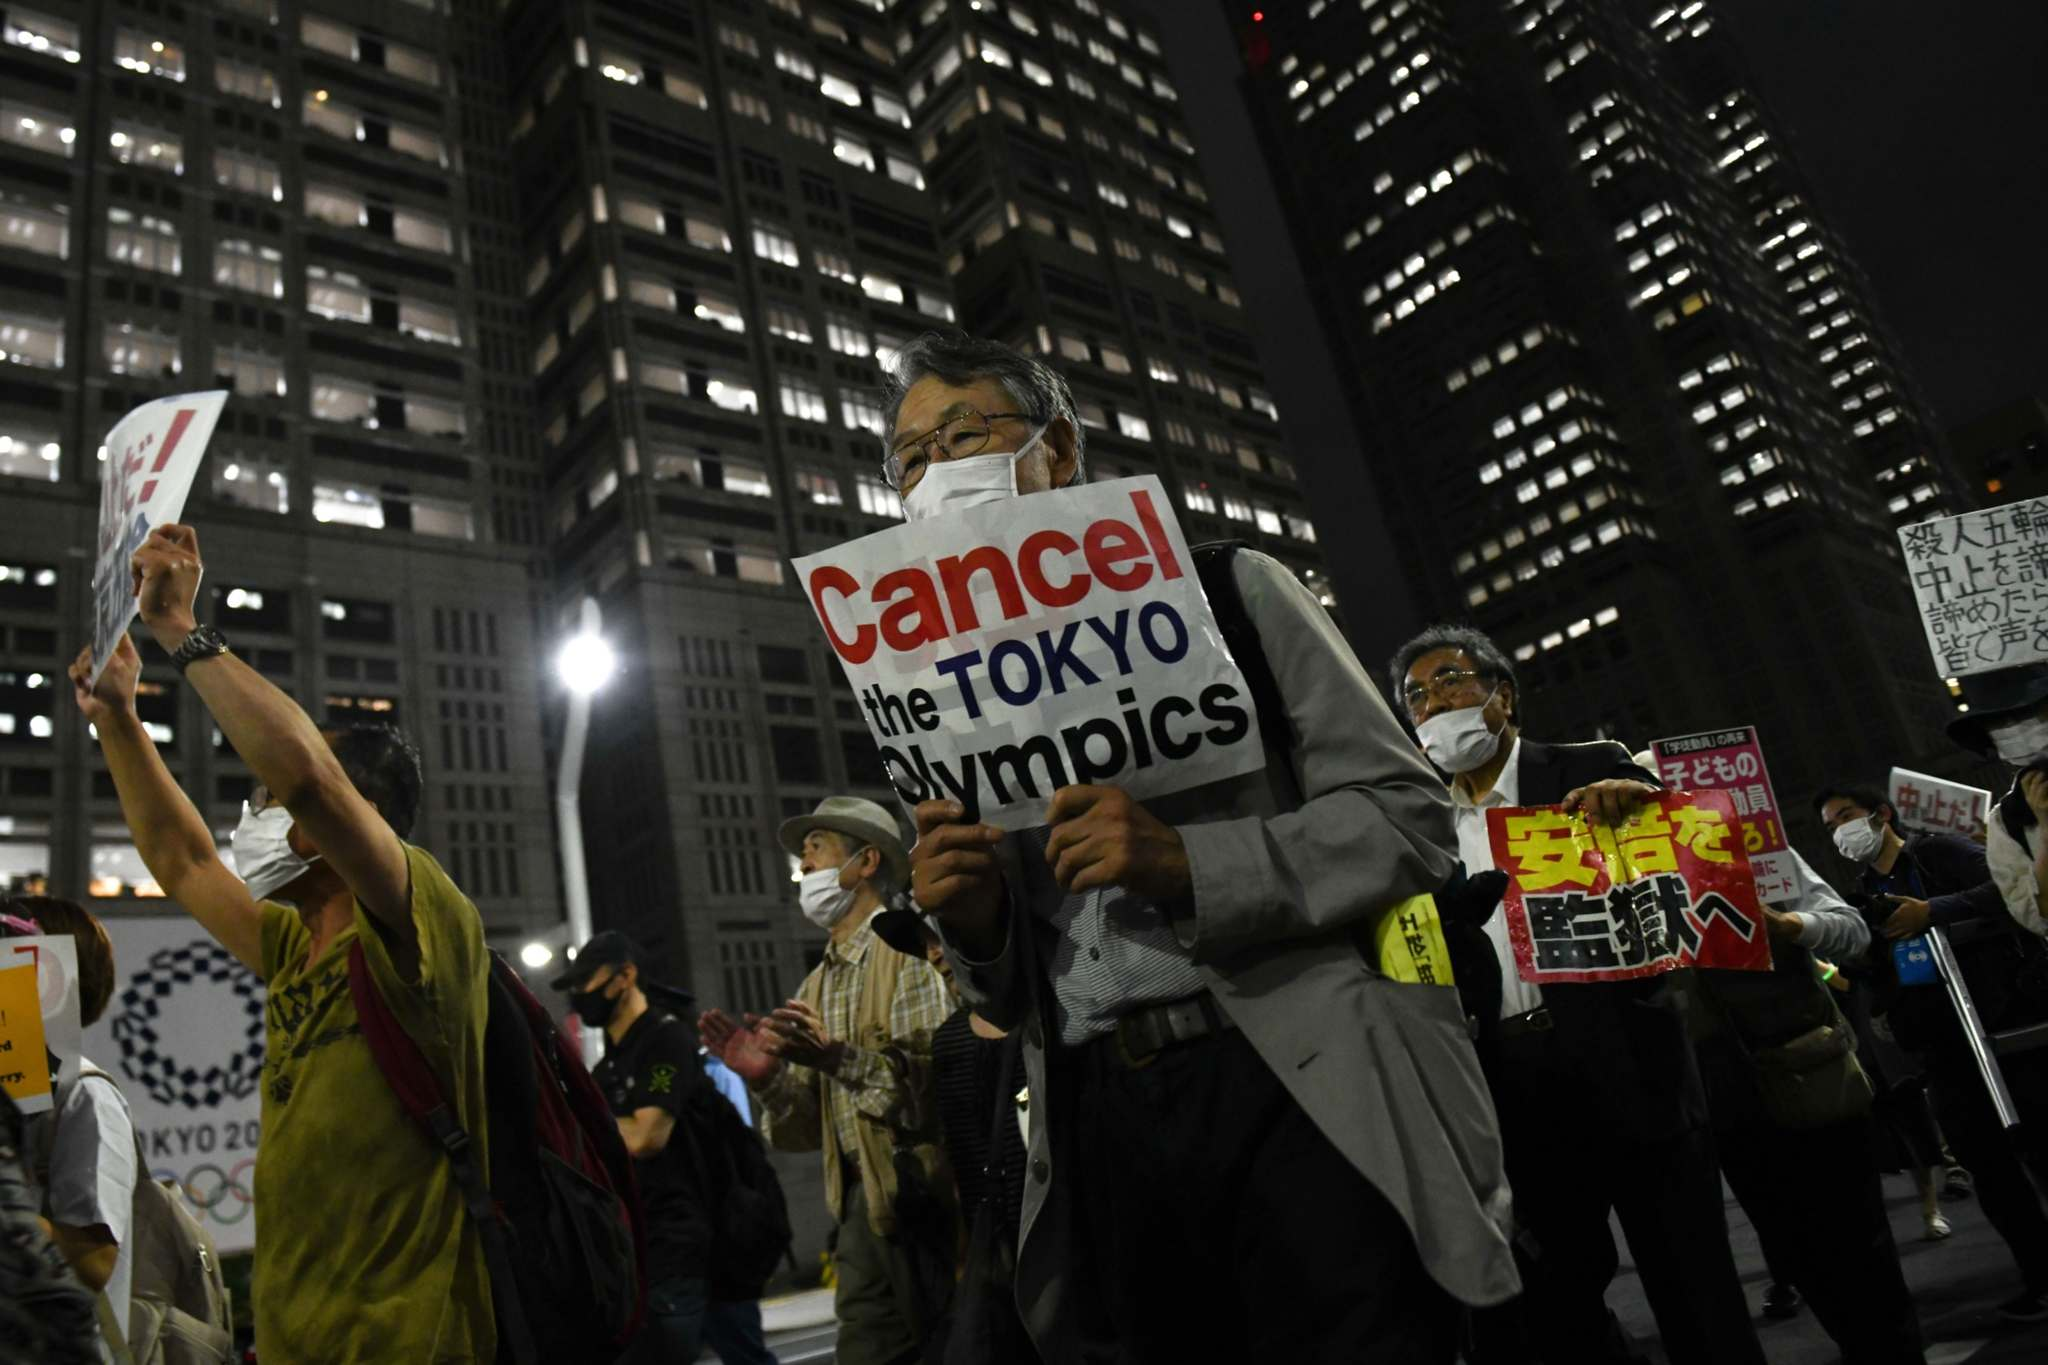 Noriko Hayashi / Bloomberg</p><p>Protesters in Tokyo call for cancellation of the Olympics.</p>